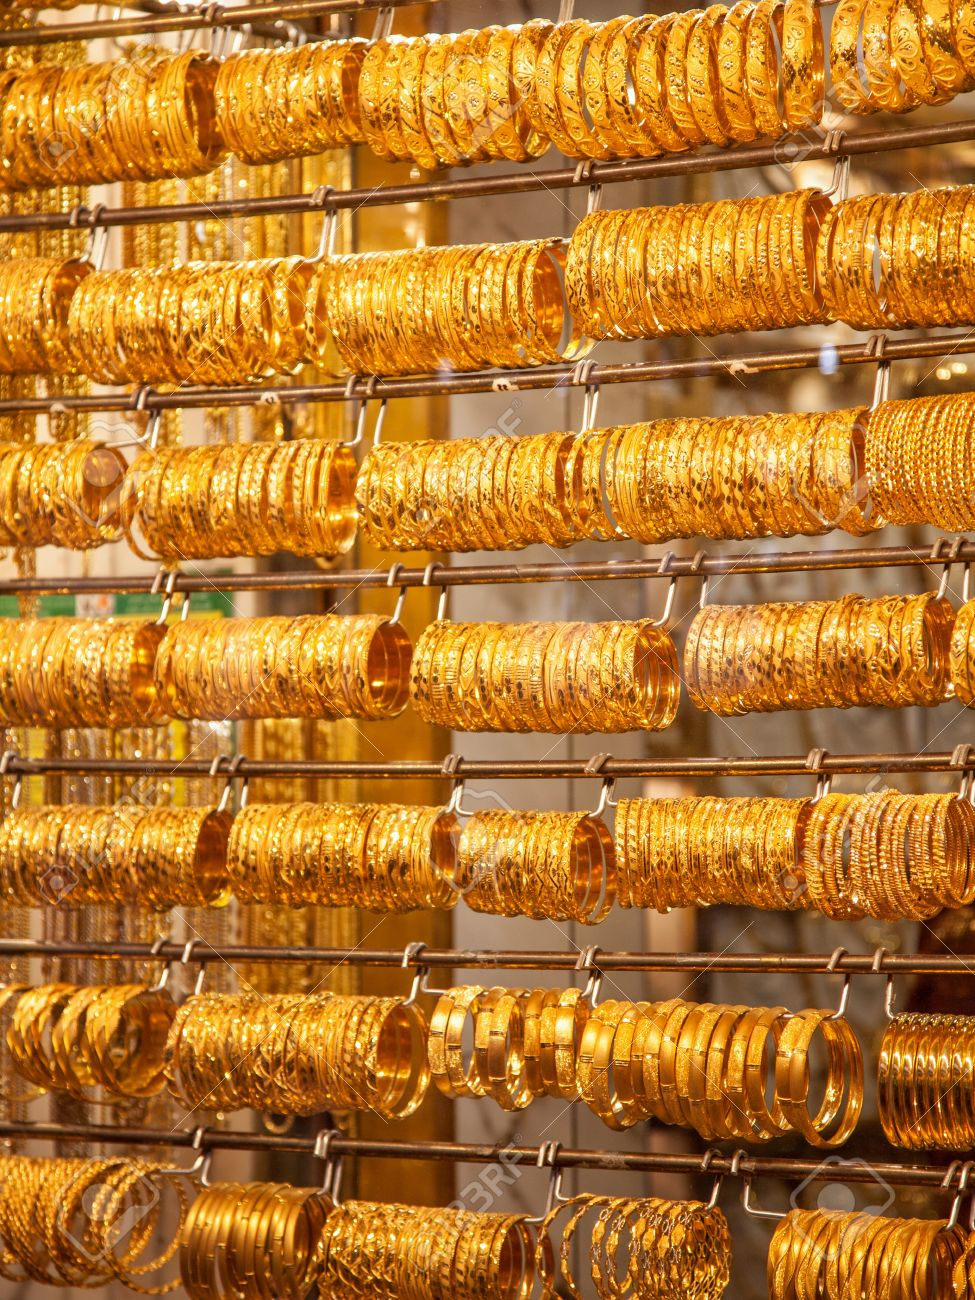 gold jewellery stock picture arab dubai united getty deira images souk and photos at emirates pictures